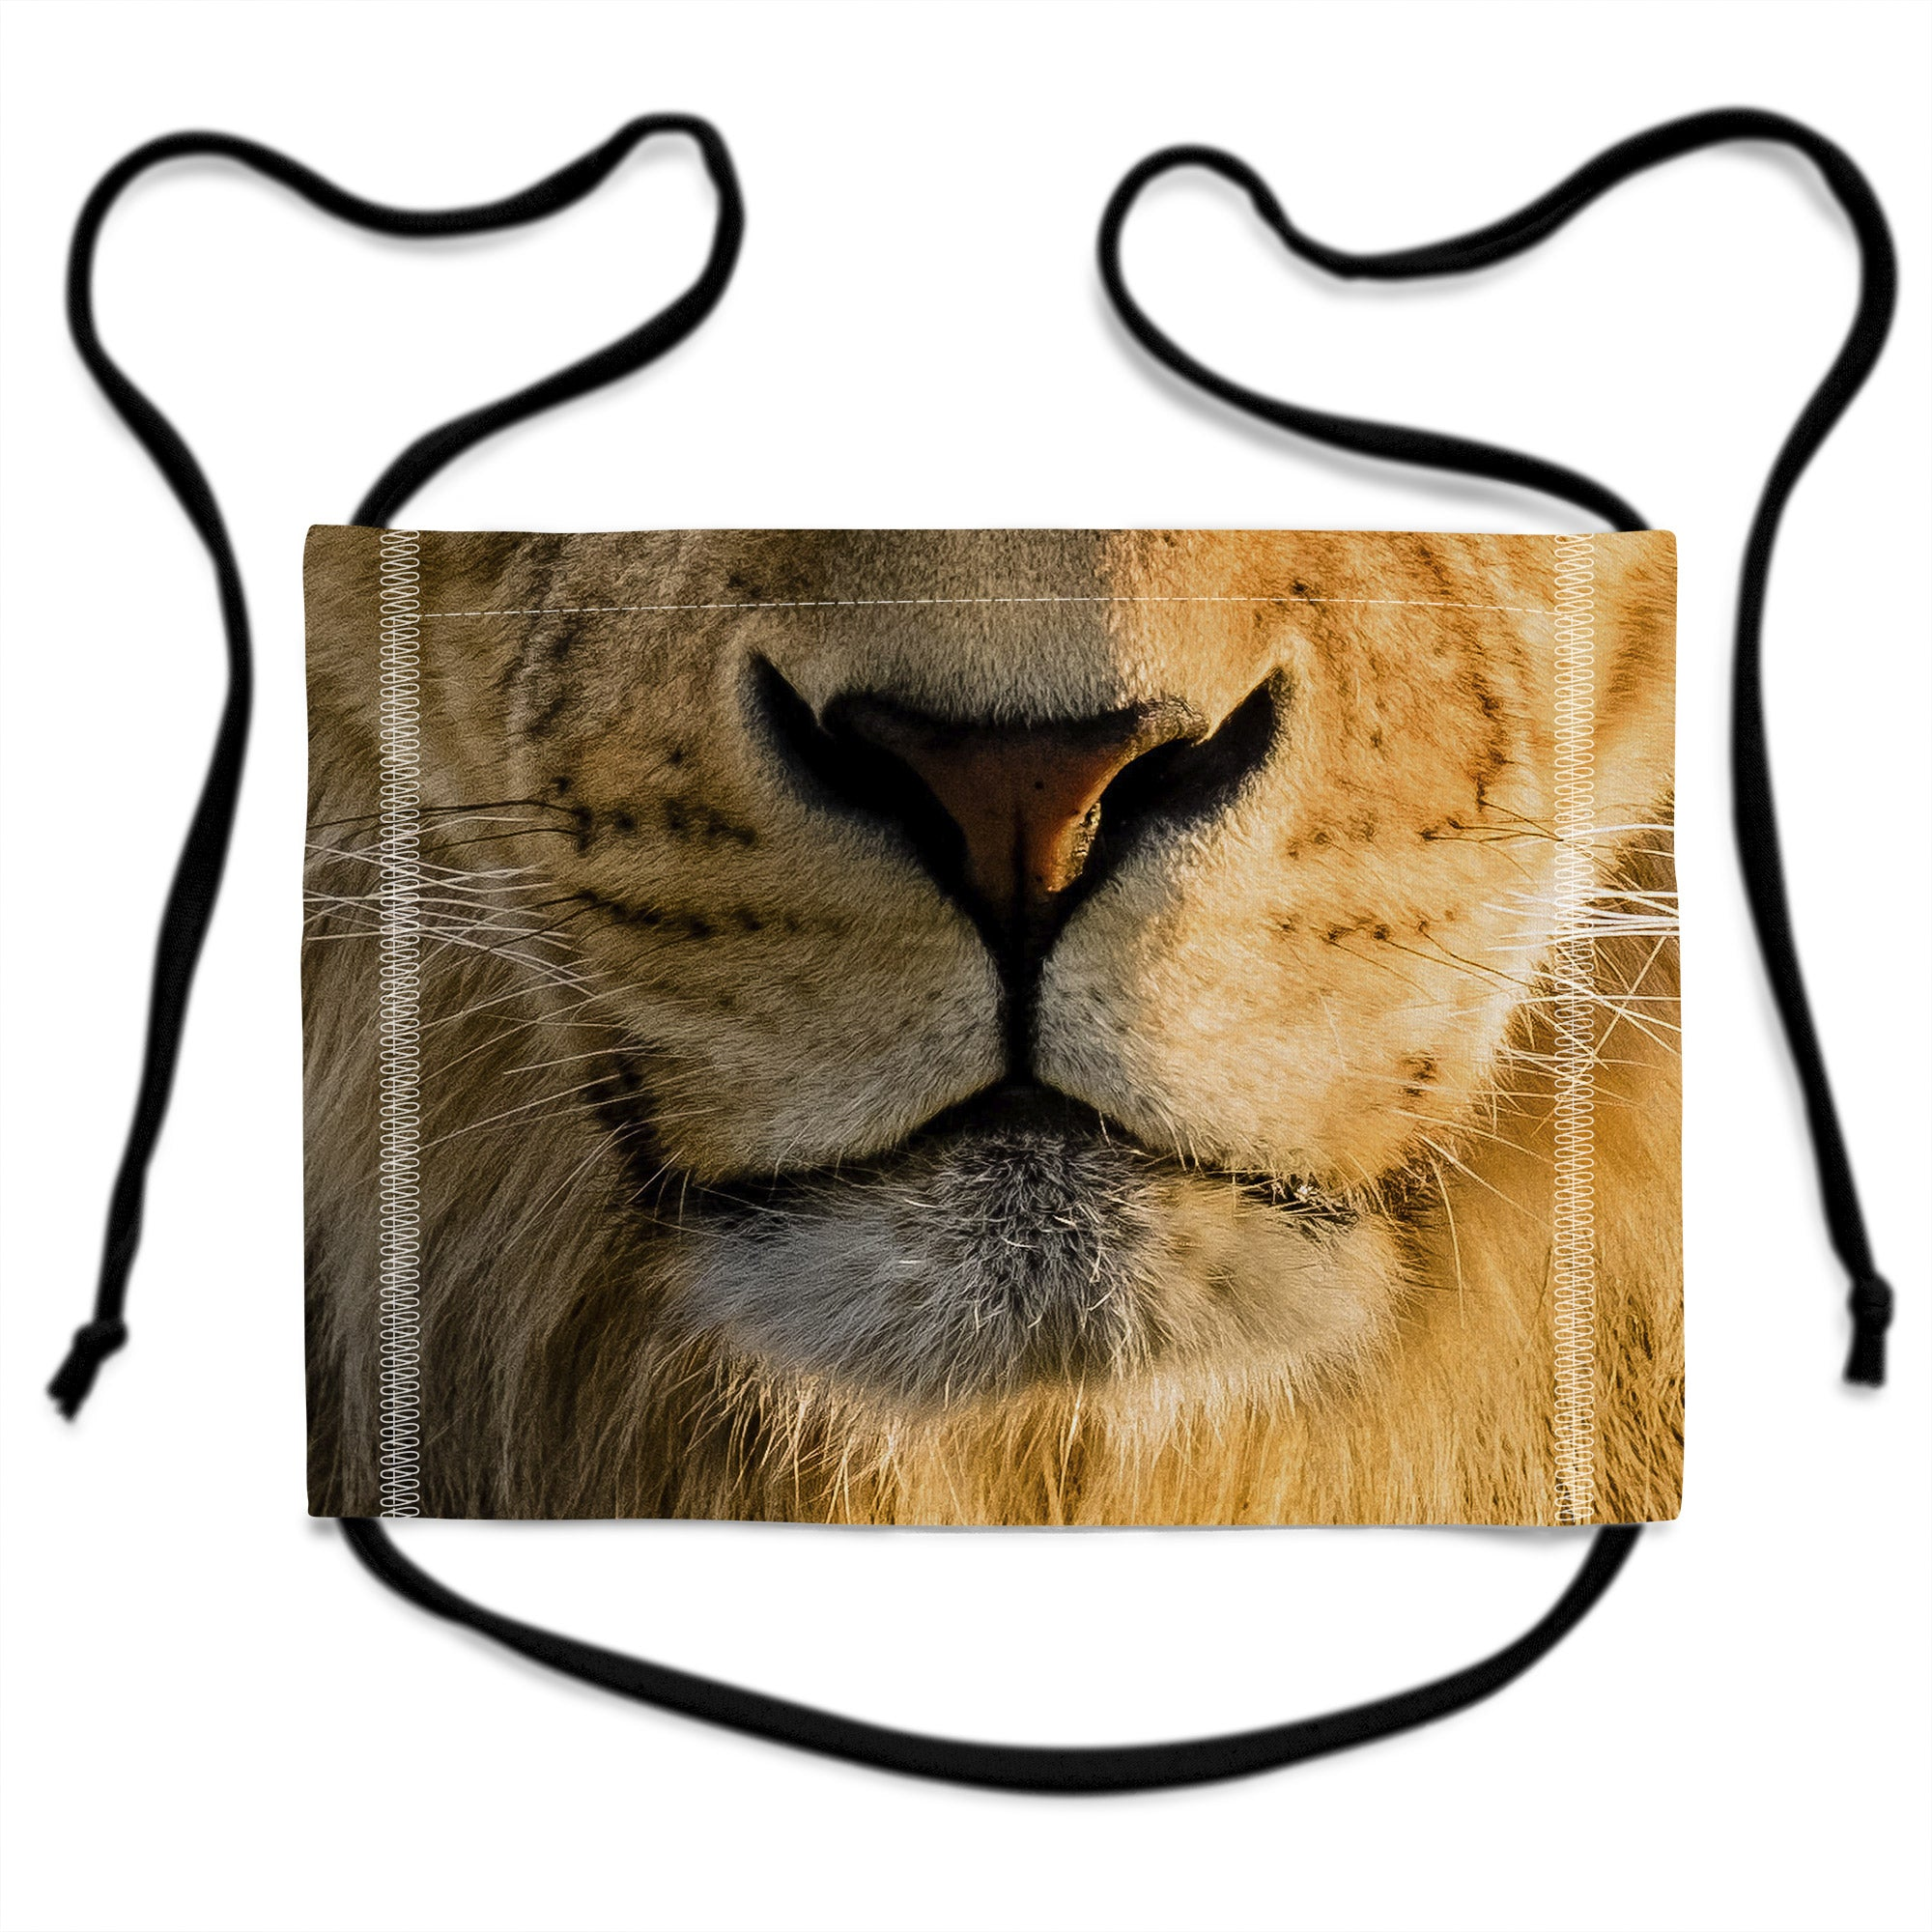 CHEAP Lion Face Mask 26654251993 – Clothing Accessories